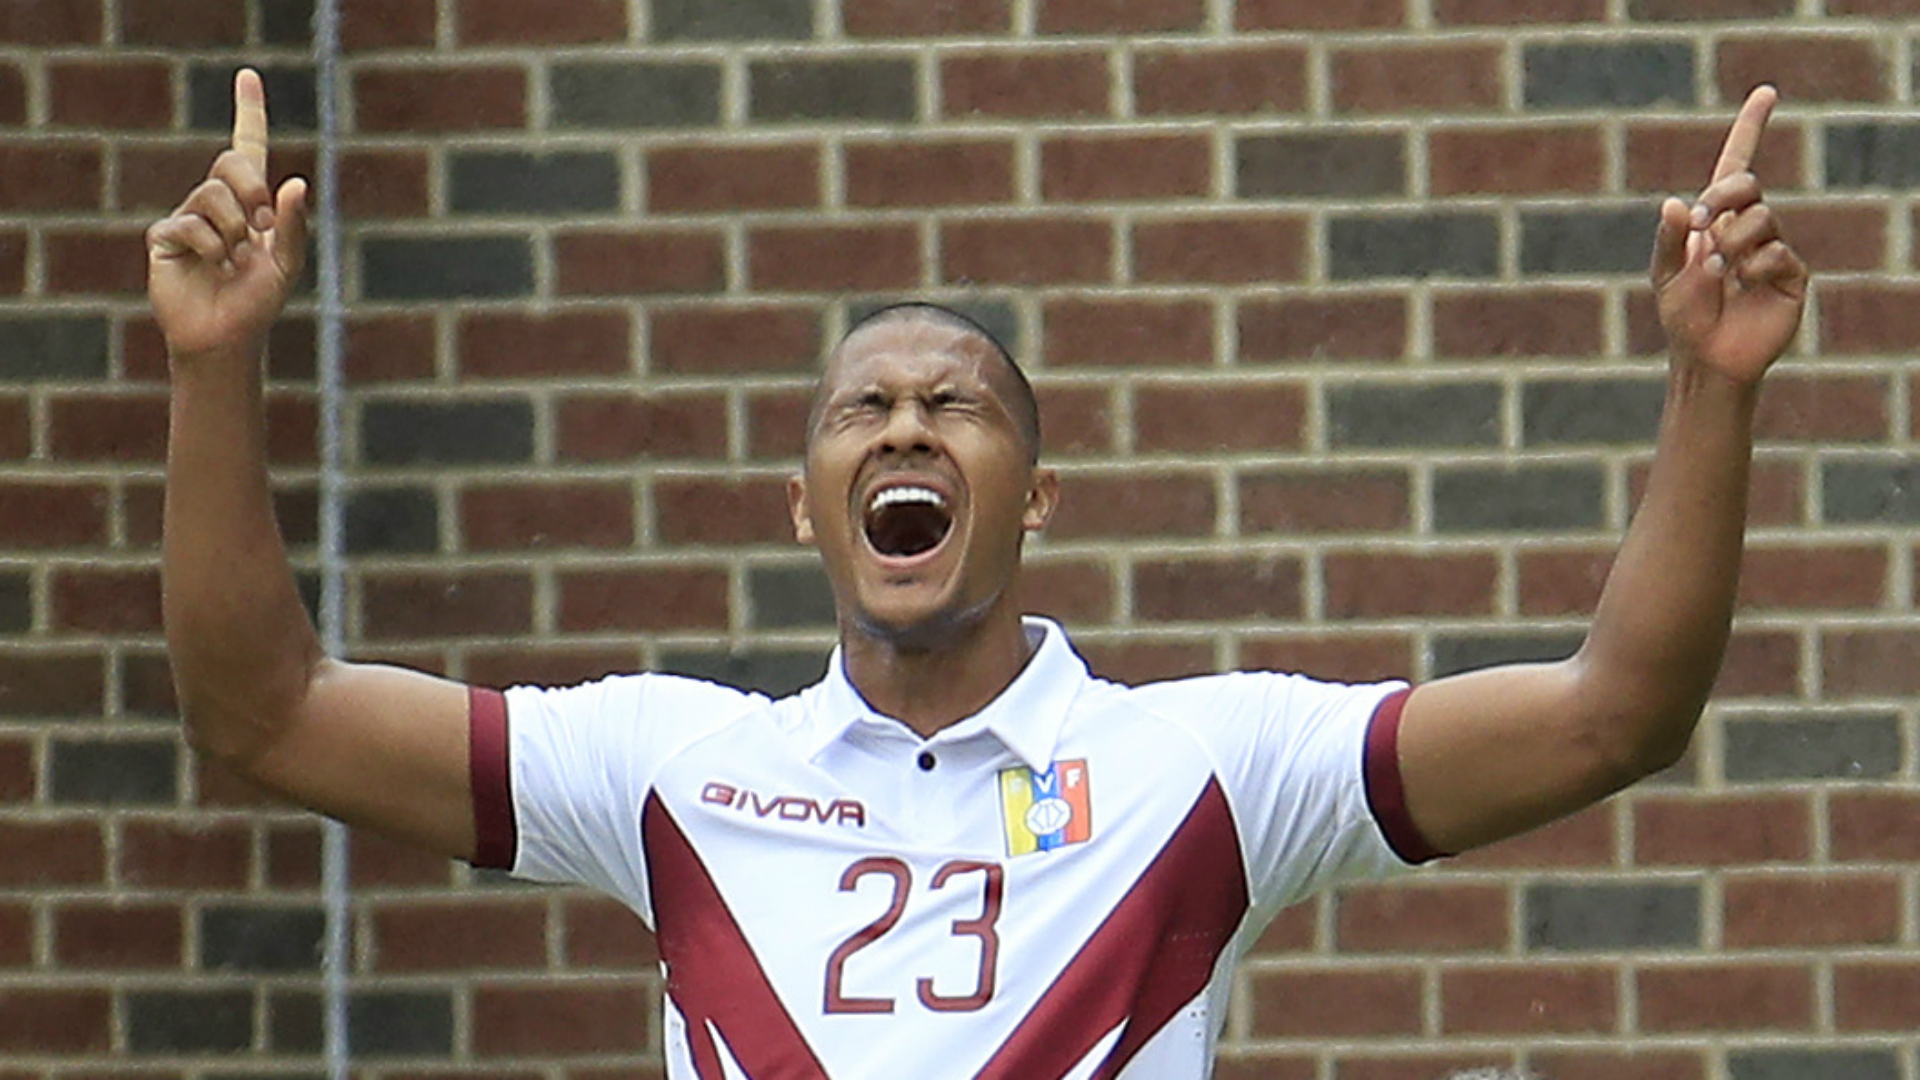 Salomon Rondon leads Venezuela to dominant win over the United States